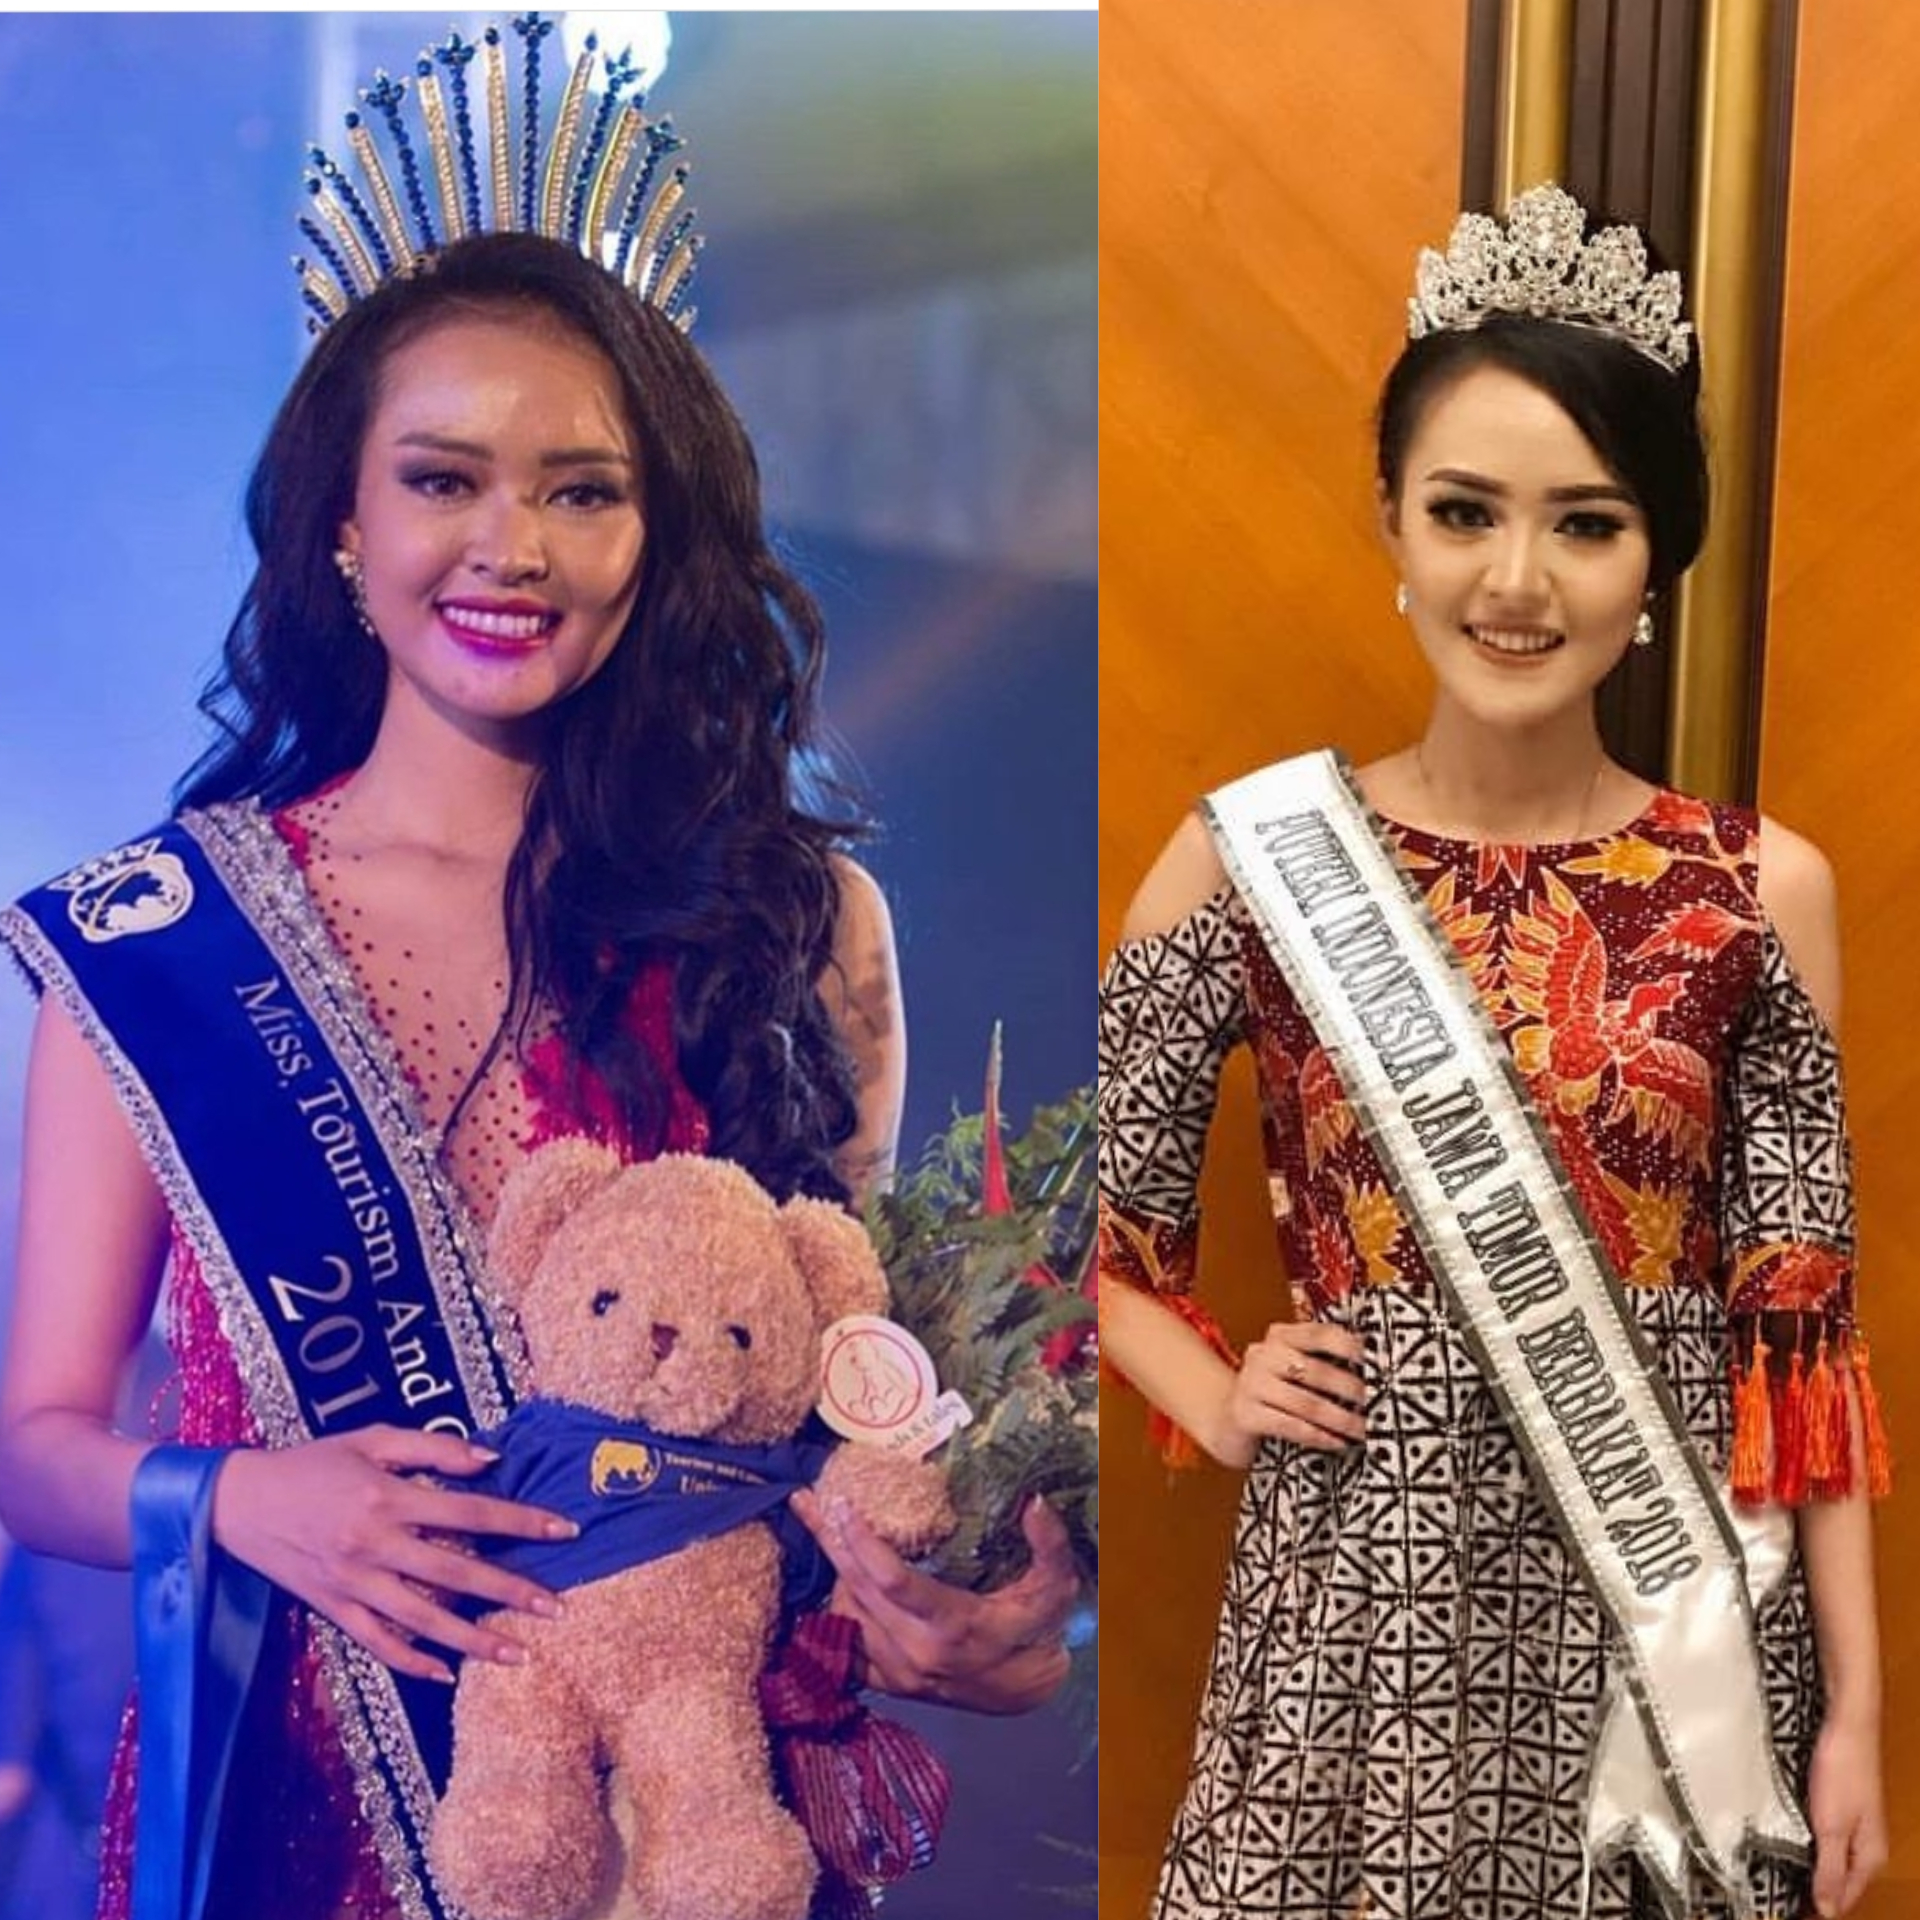 Olivia-Gunawan-Miss-Tourism-Culture-and-Universe-2019